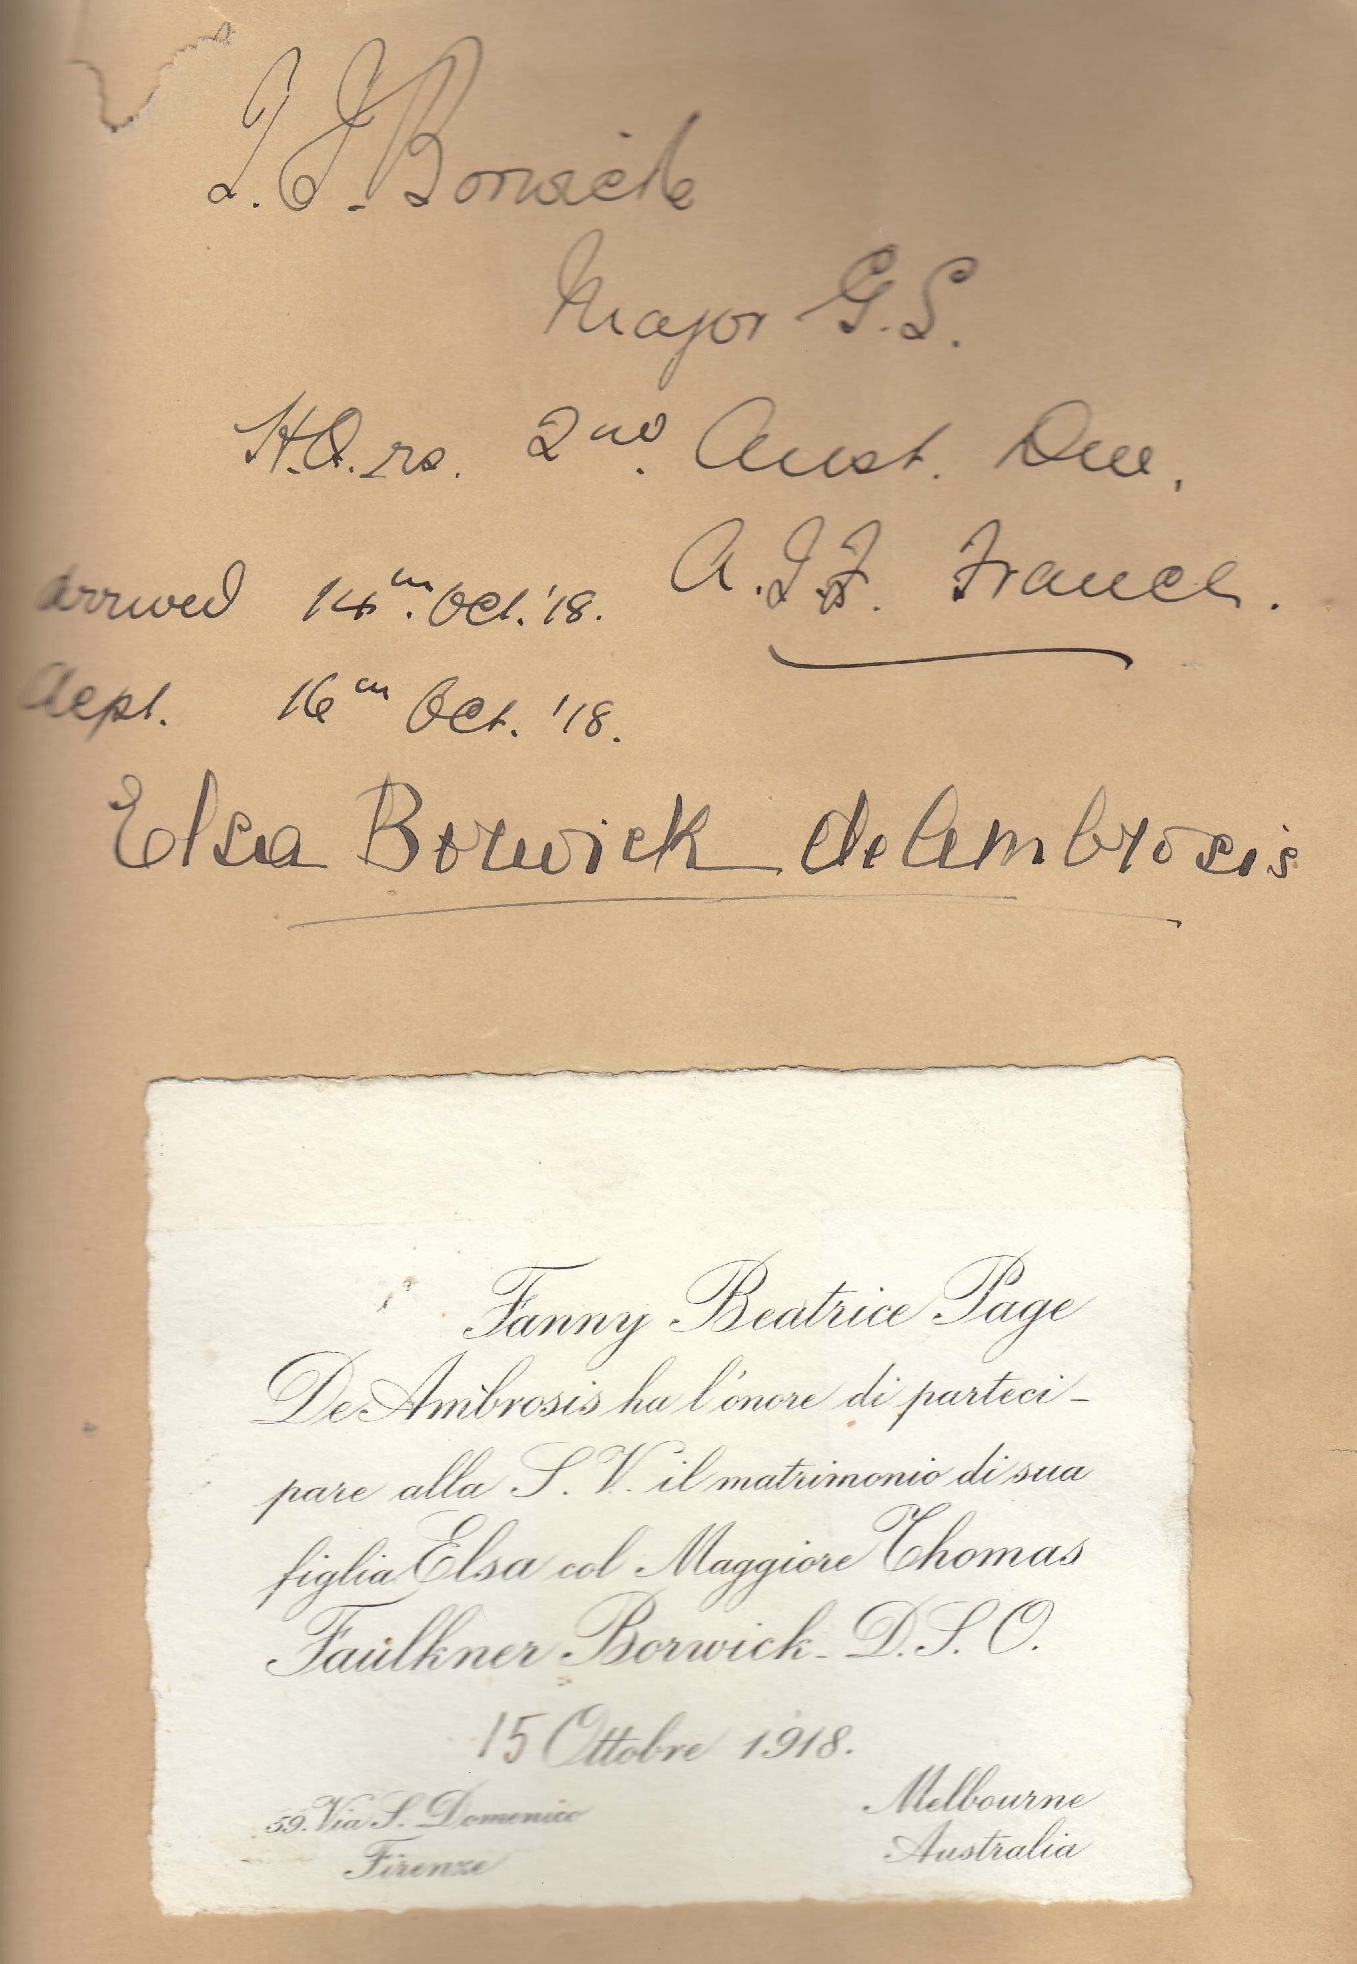 Wedding invitation - Thomas Borwick and Elsa De Ambrosis, 15 Oct 1918